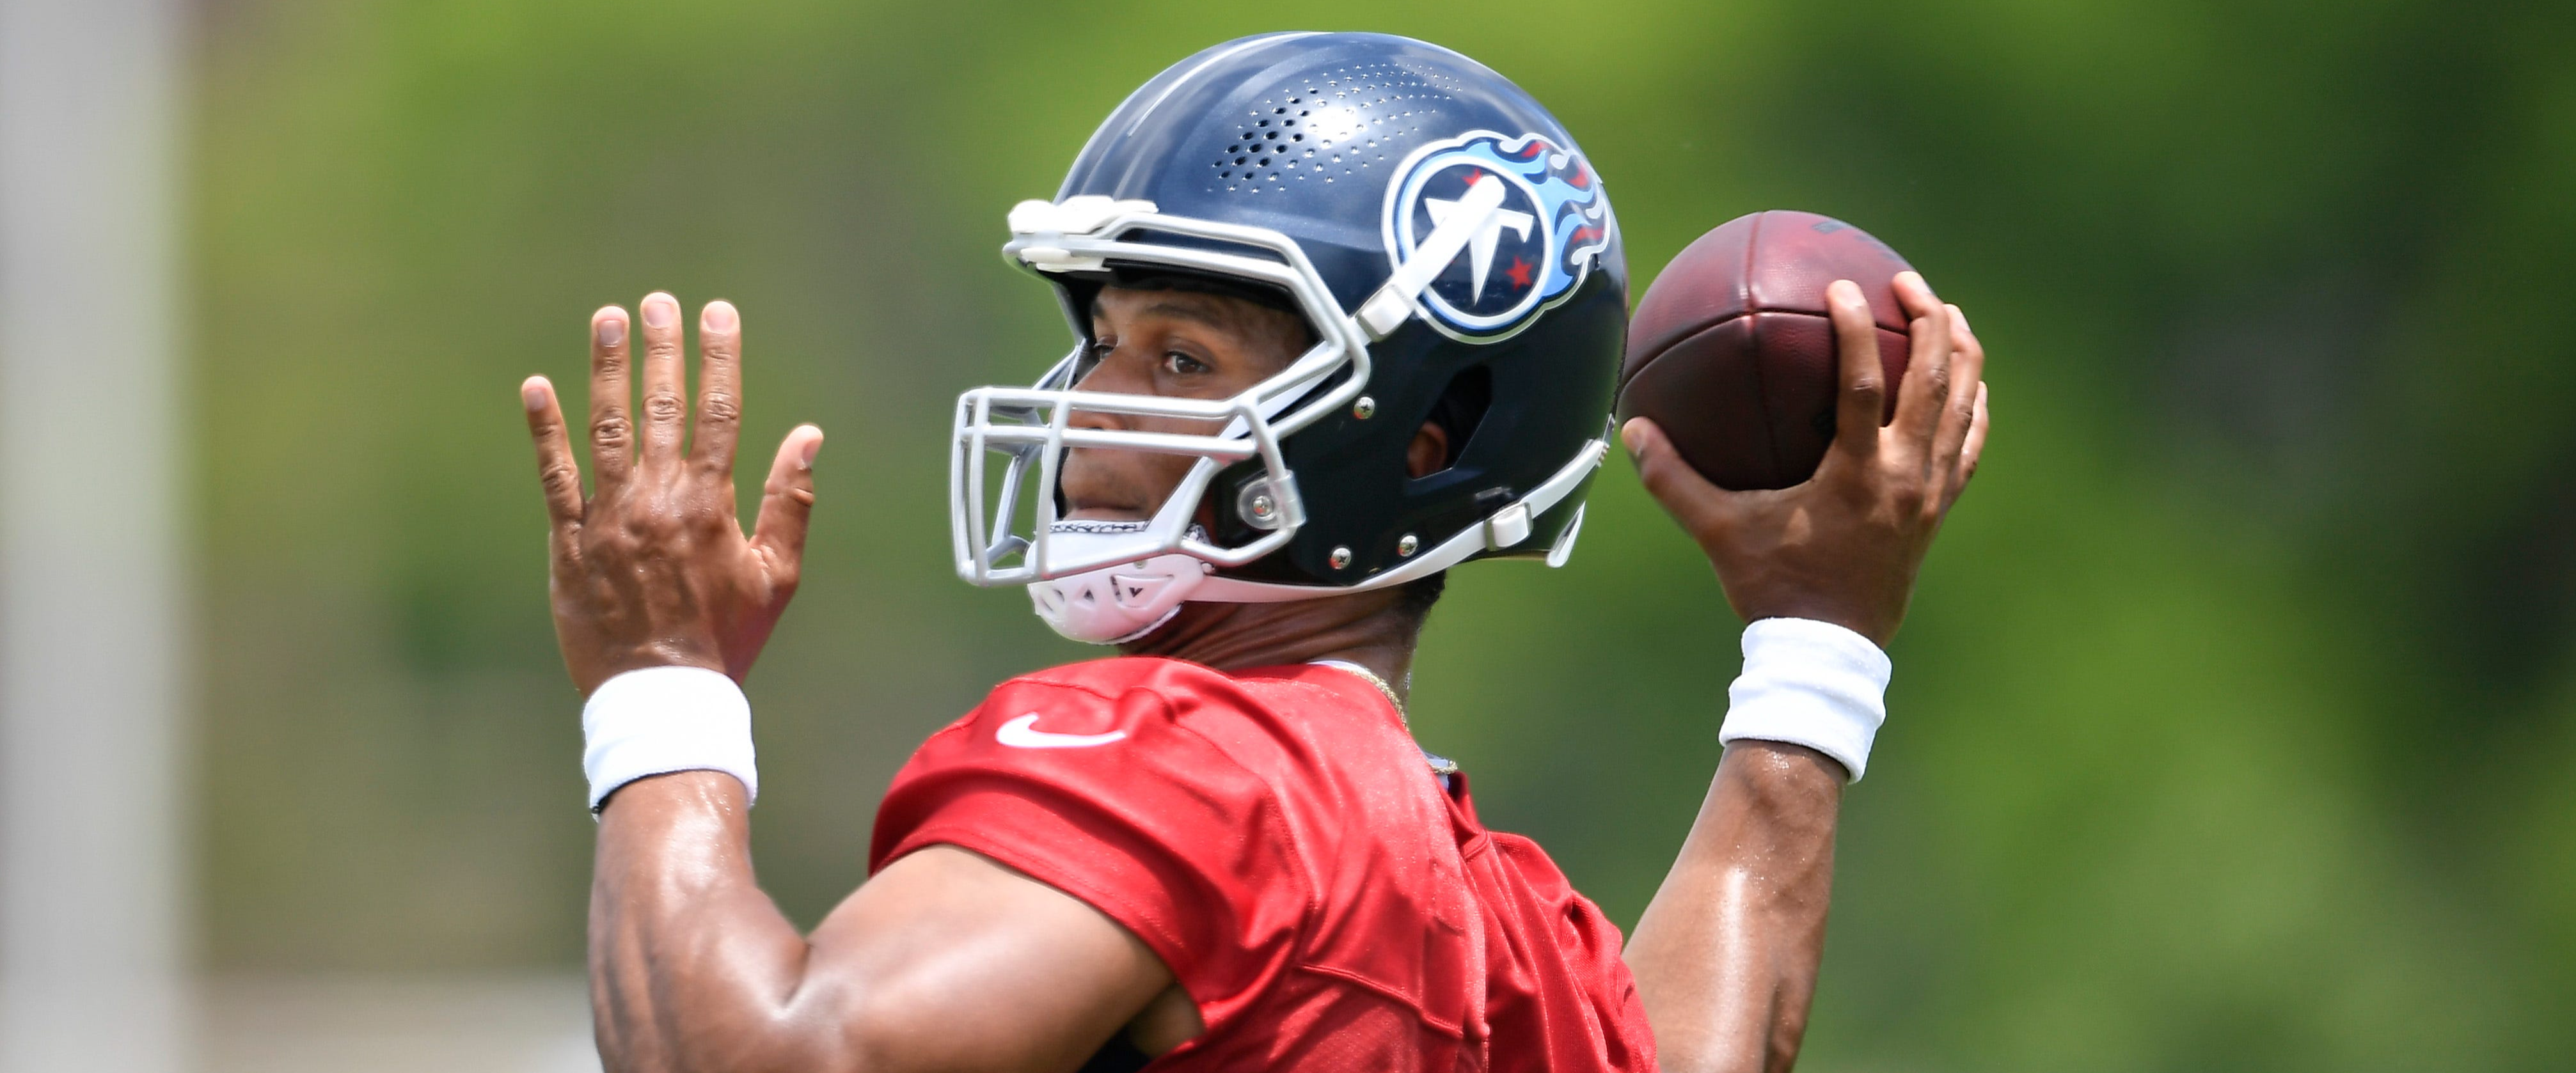 This backup quarterback has delighted during Titans minicamp